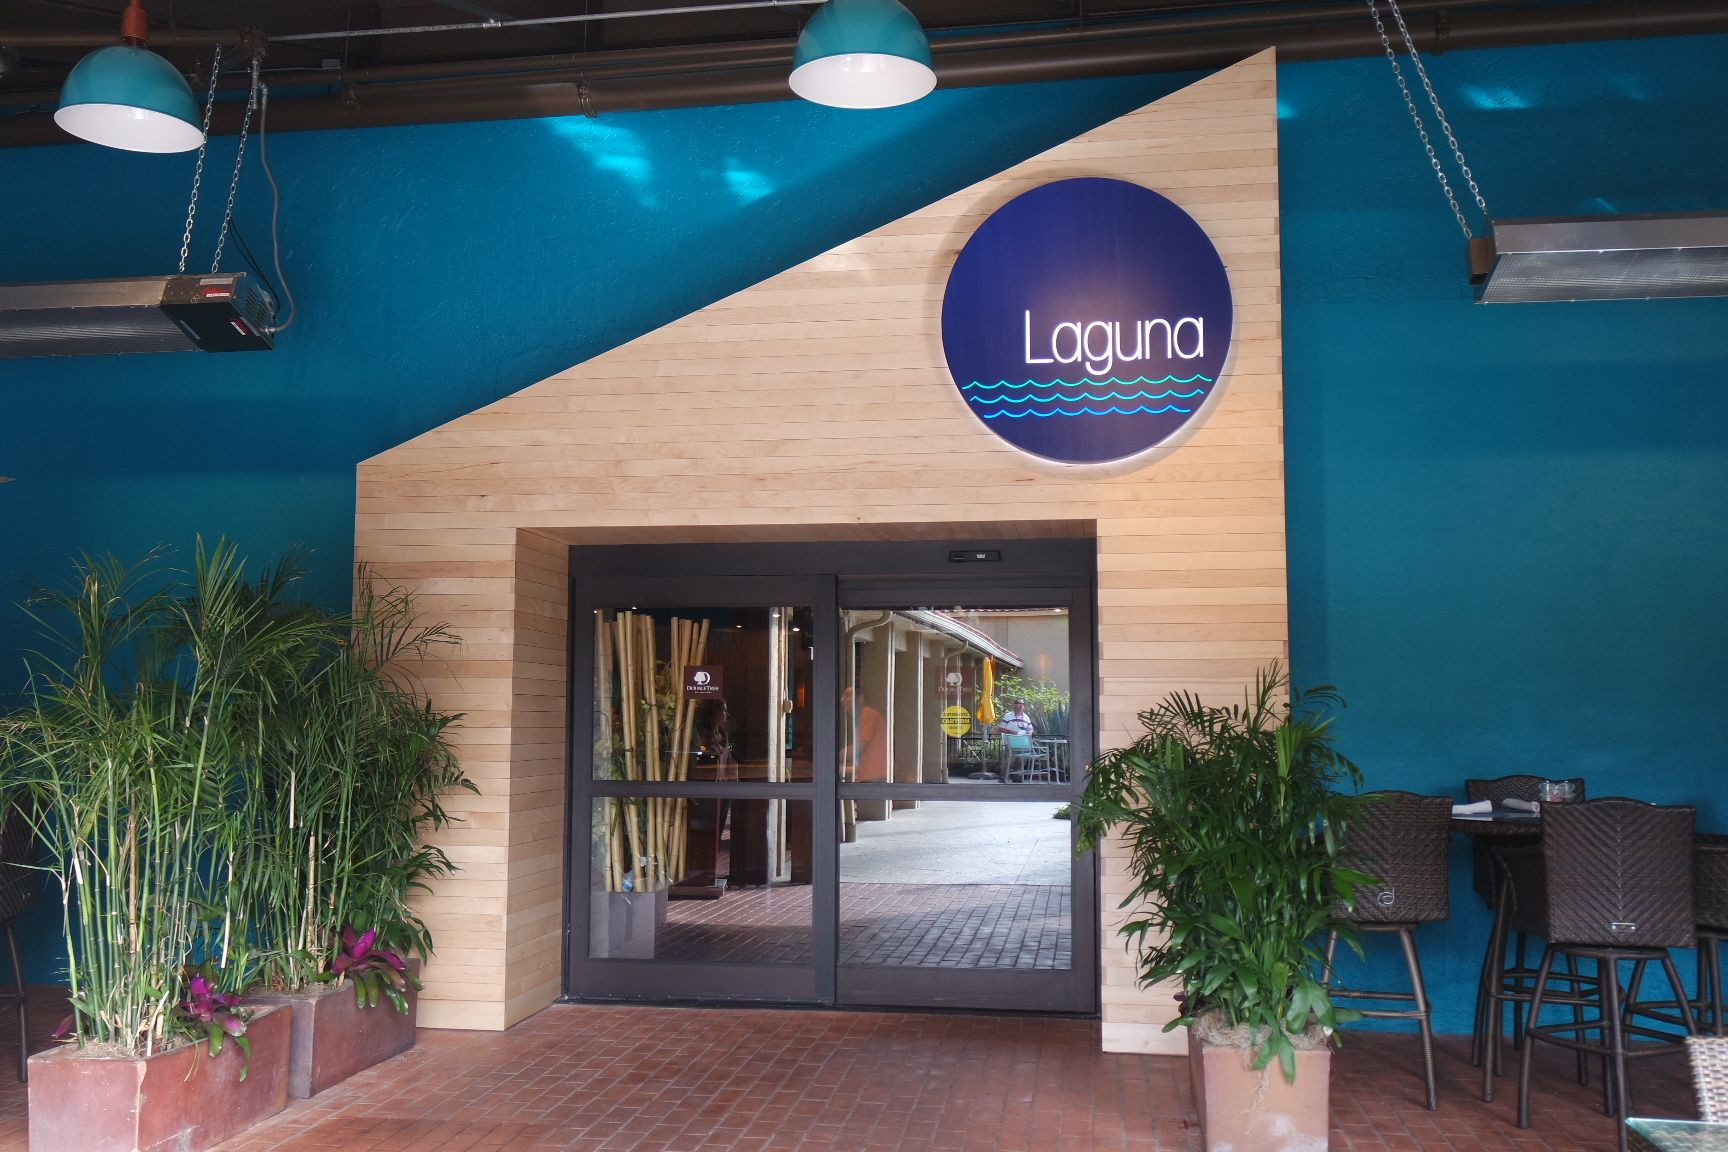 Laguna is conveniently located just outside the main lobby Choose